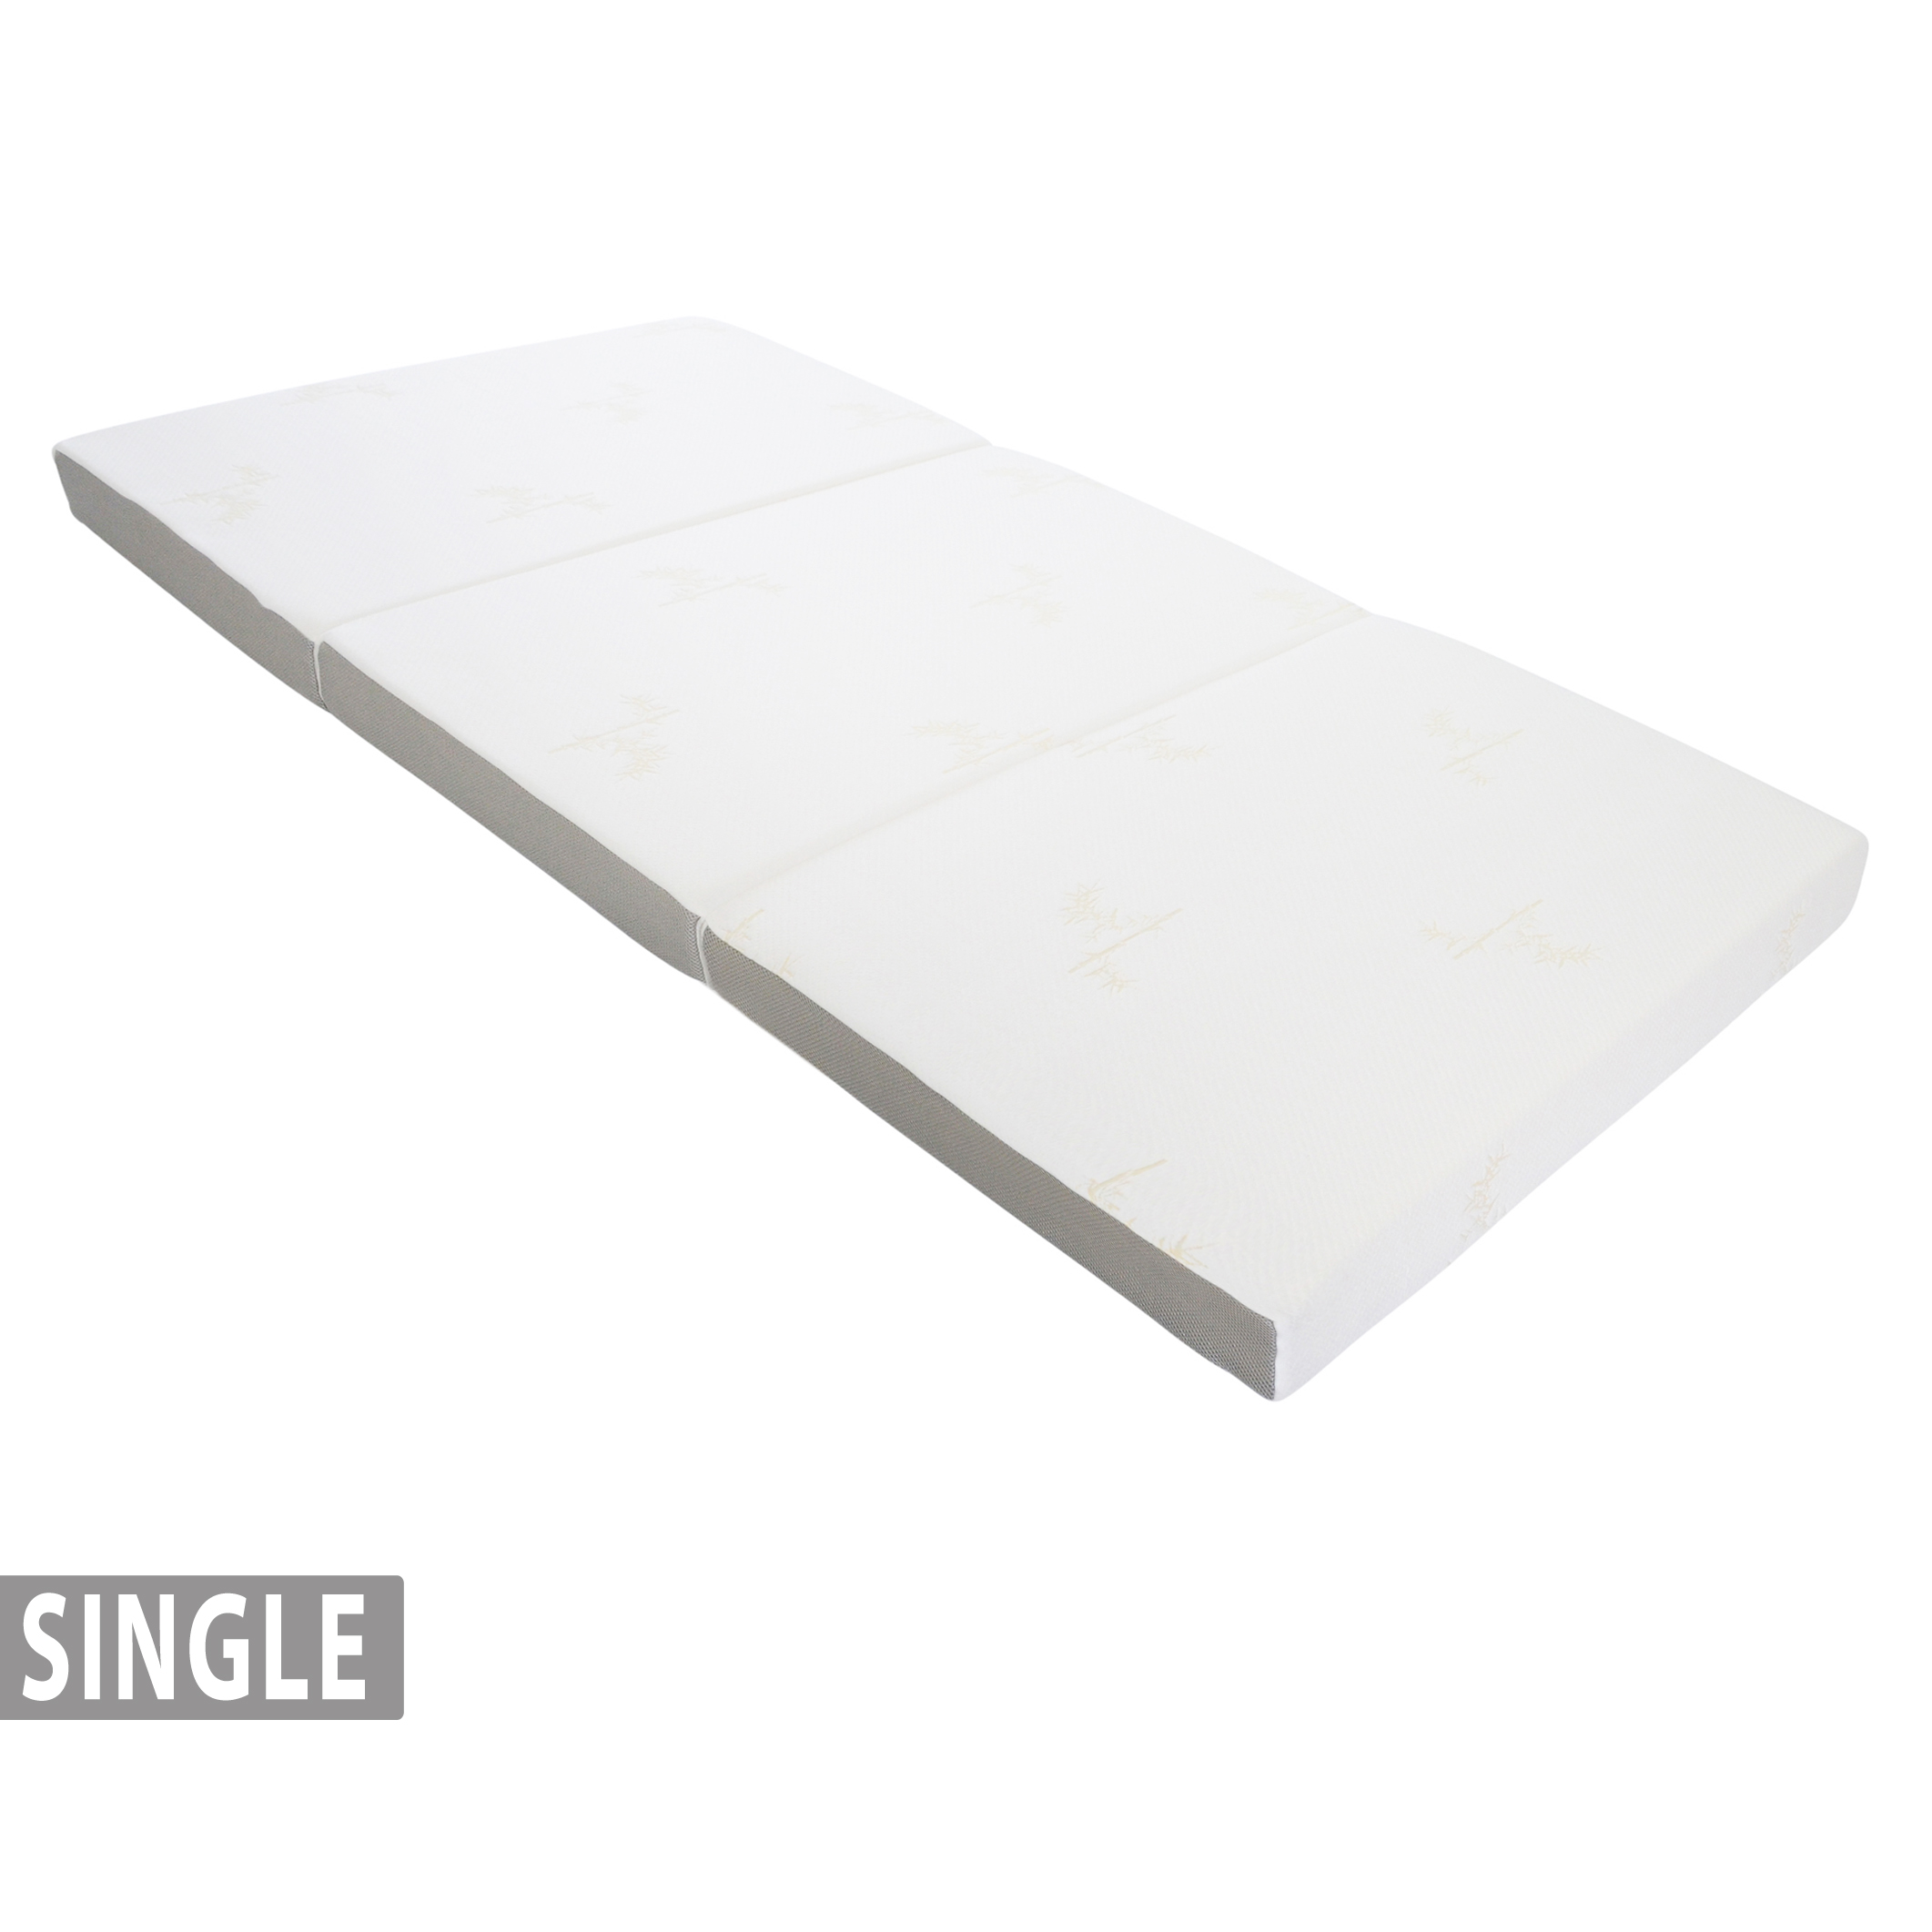 4 Tri Fold Foam Mattress With Cover Single 75 X 25